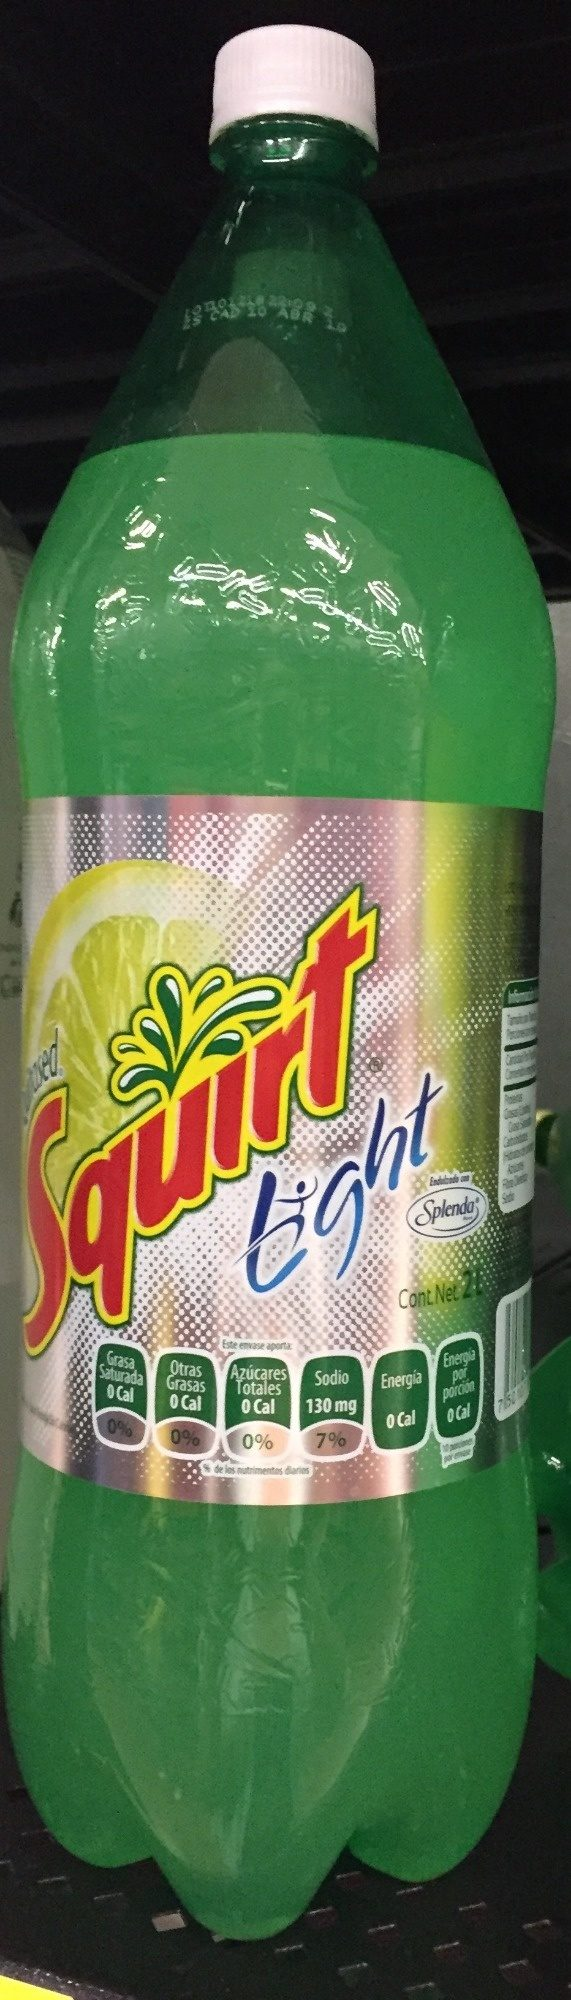 Squirt Light - Producto - es